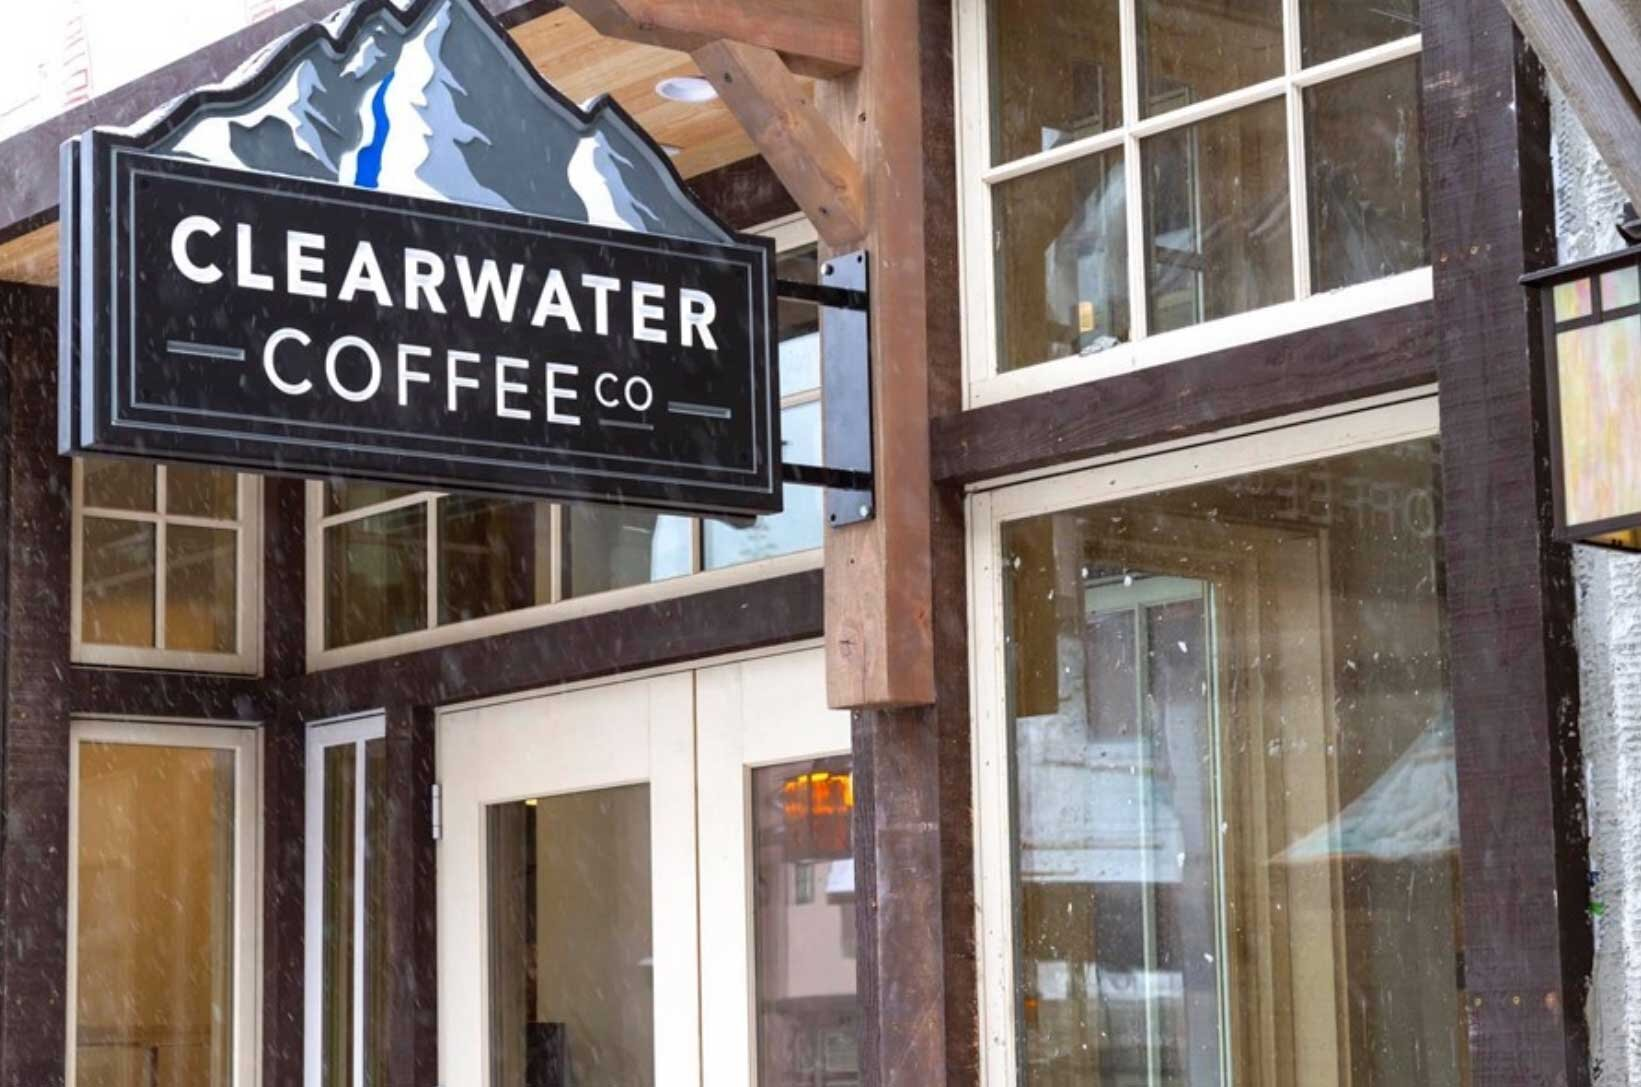 CLEARWATER COFFEE